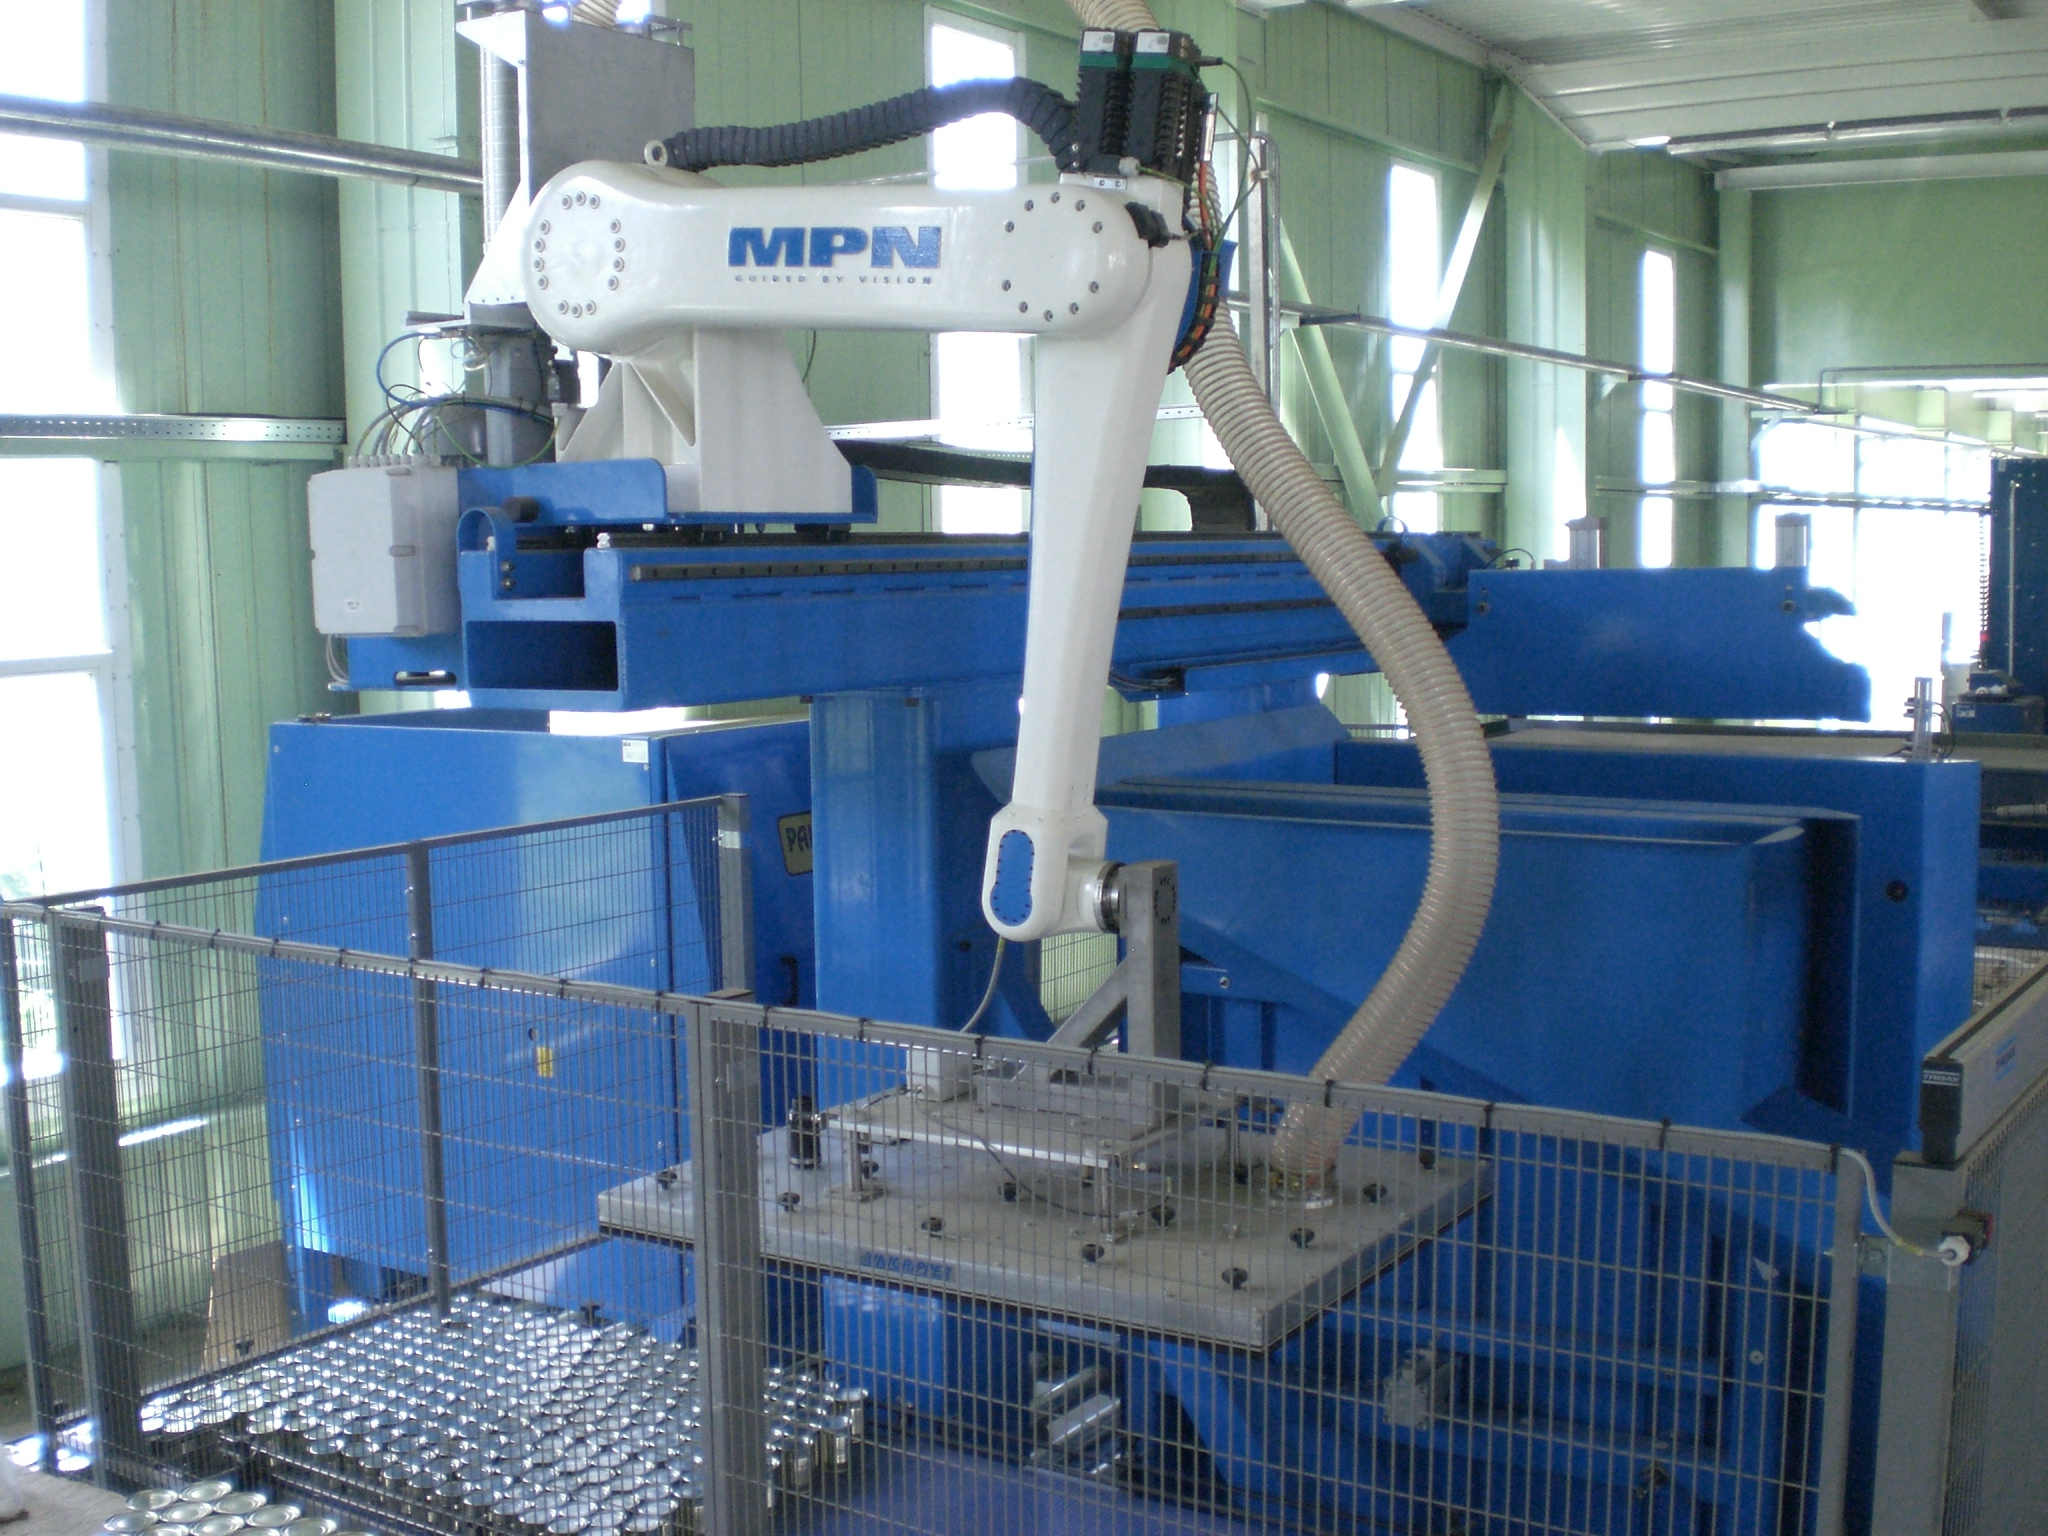 Palletizing robot for palletizing cans and glass